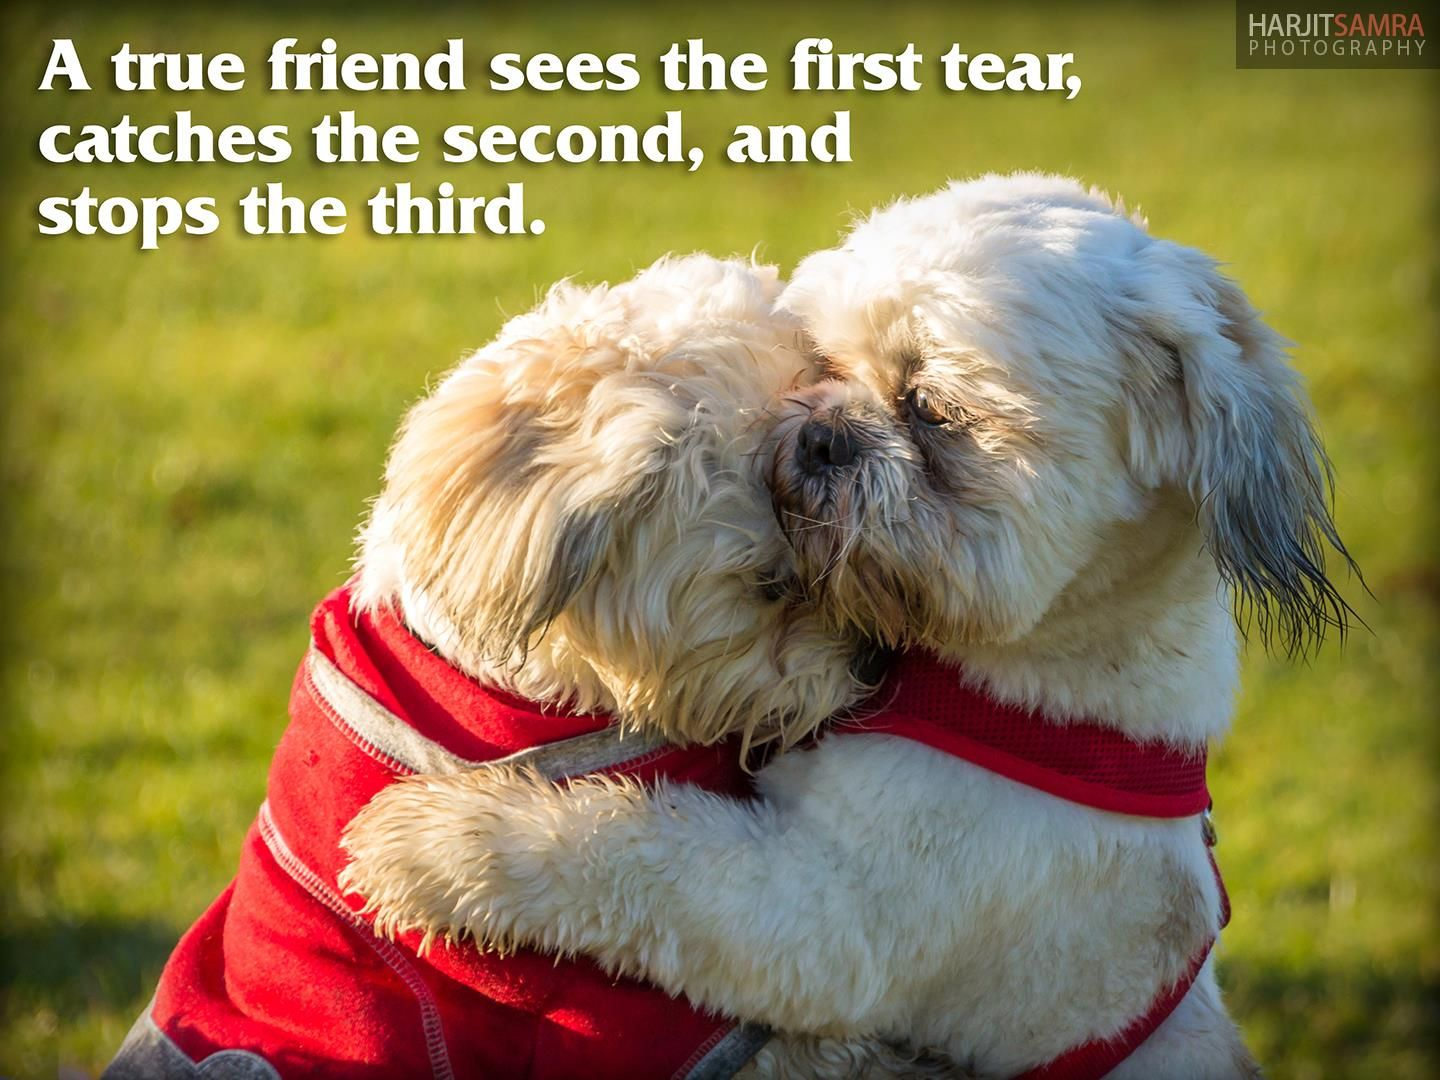 A true friend sees the first tear, catches the second and